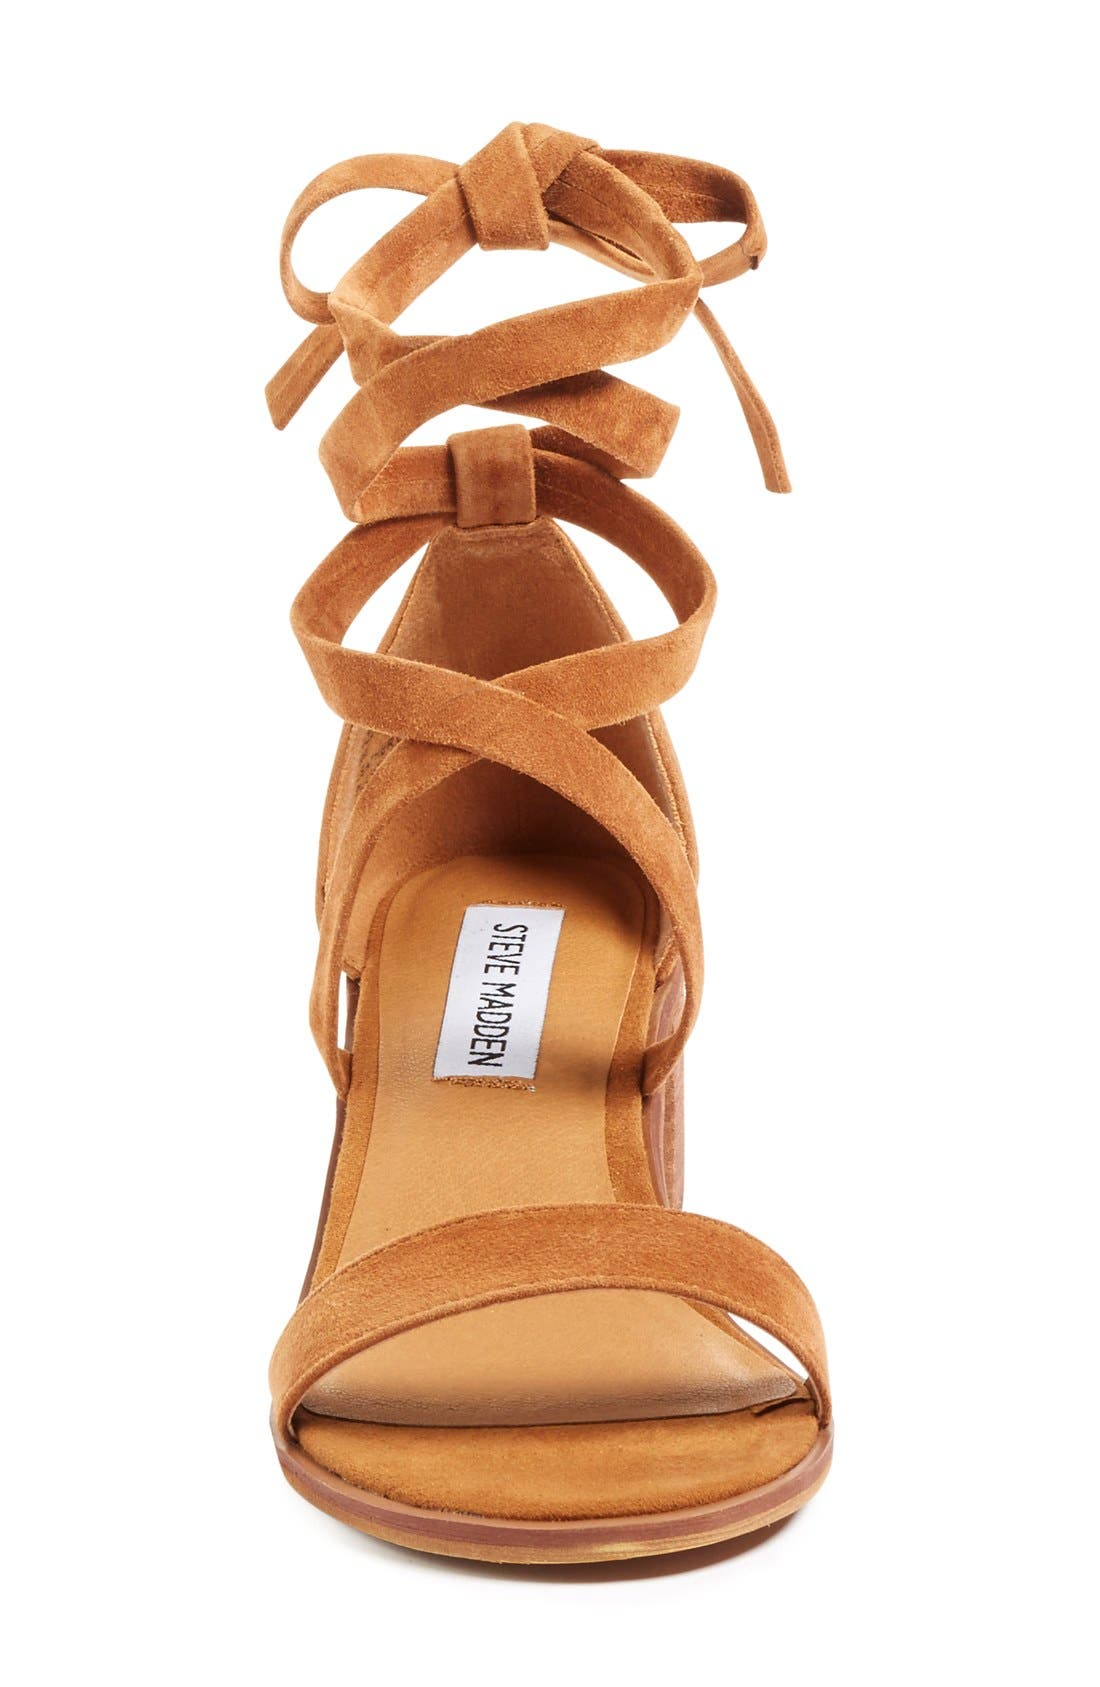 'Rizzaa' Ankle Strap Sandal,                             Alternate thumbnail 3, color,                             200